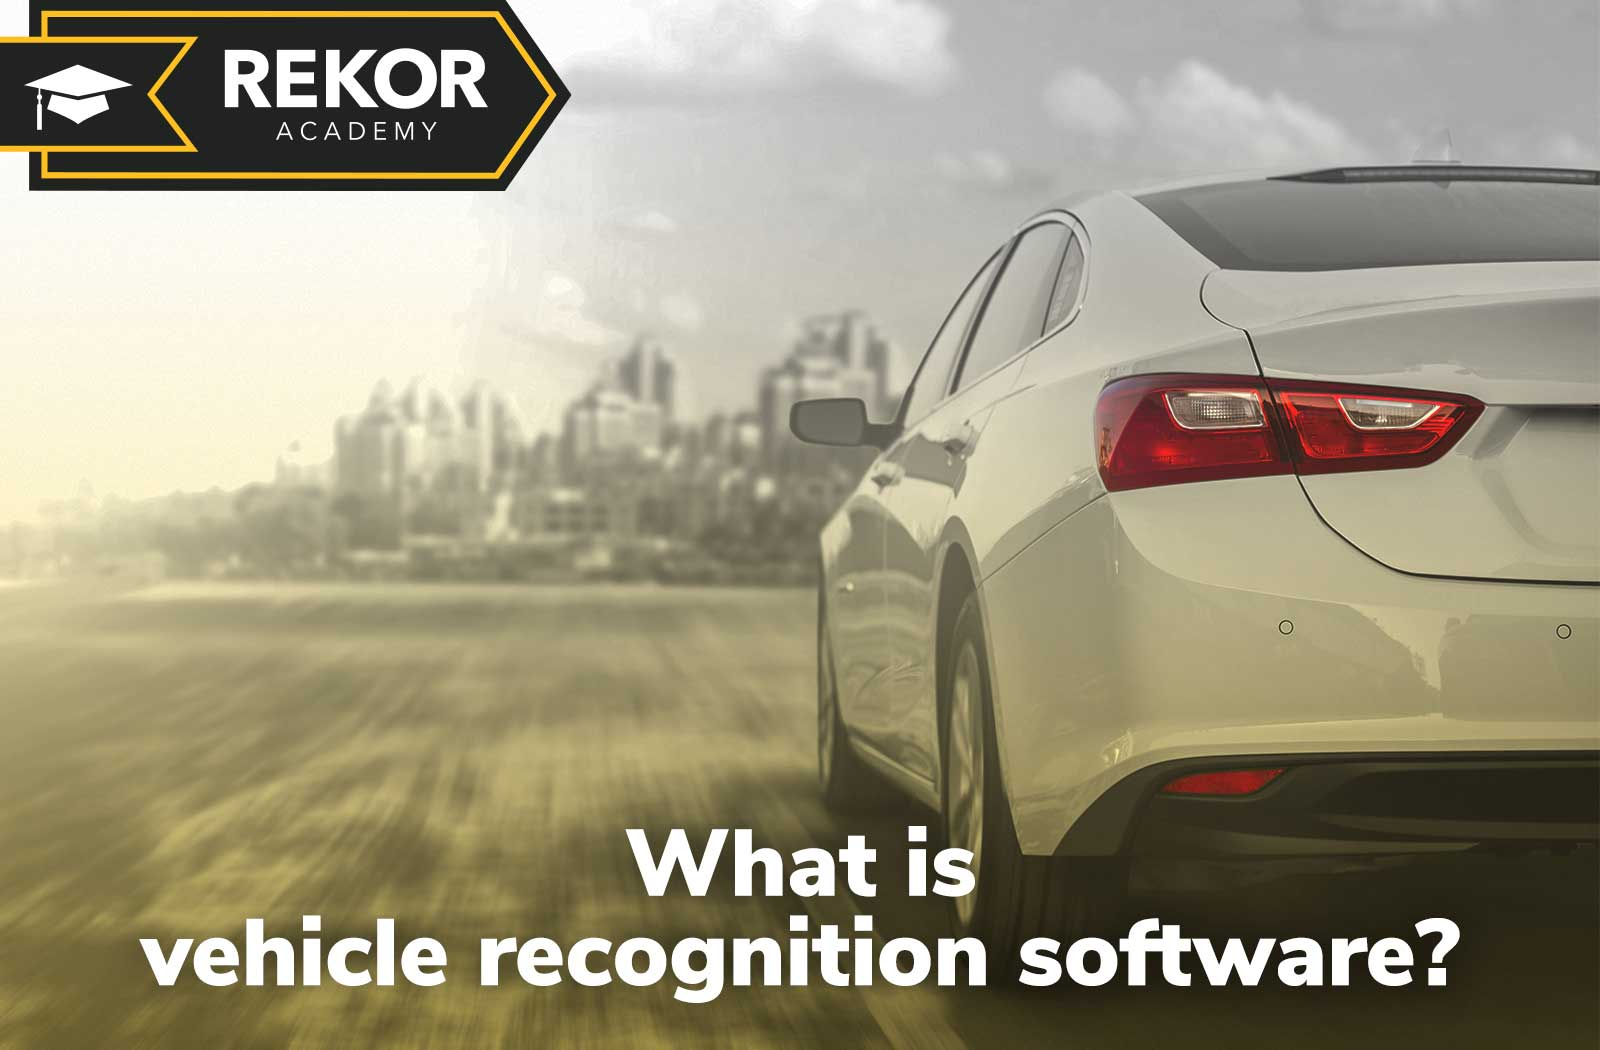 What is vehicle recognition software video thumbnail